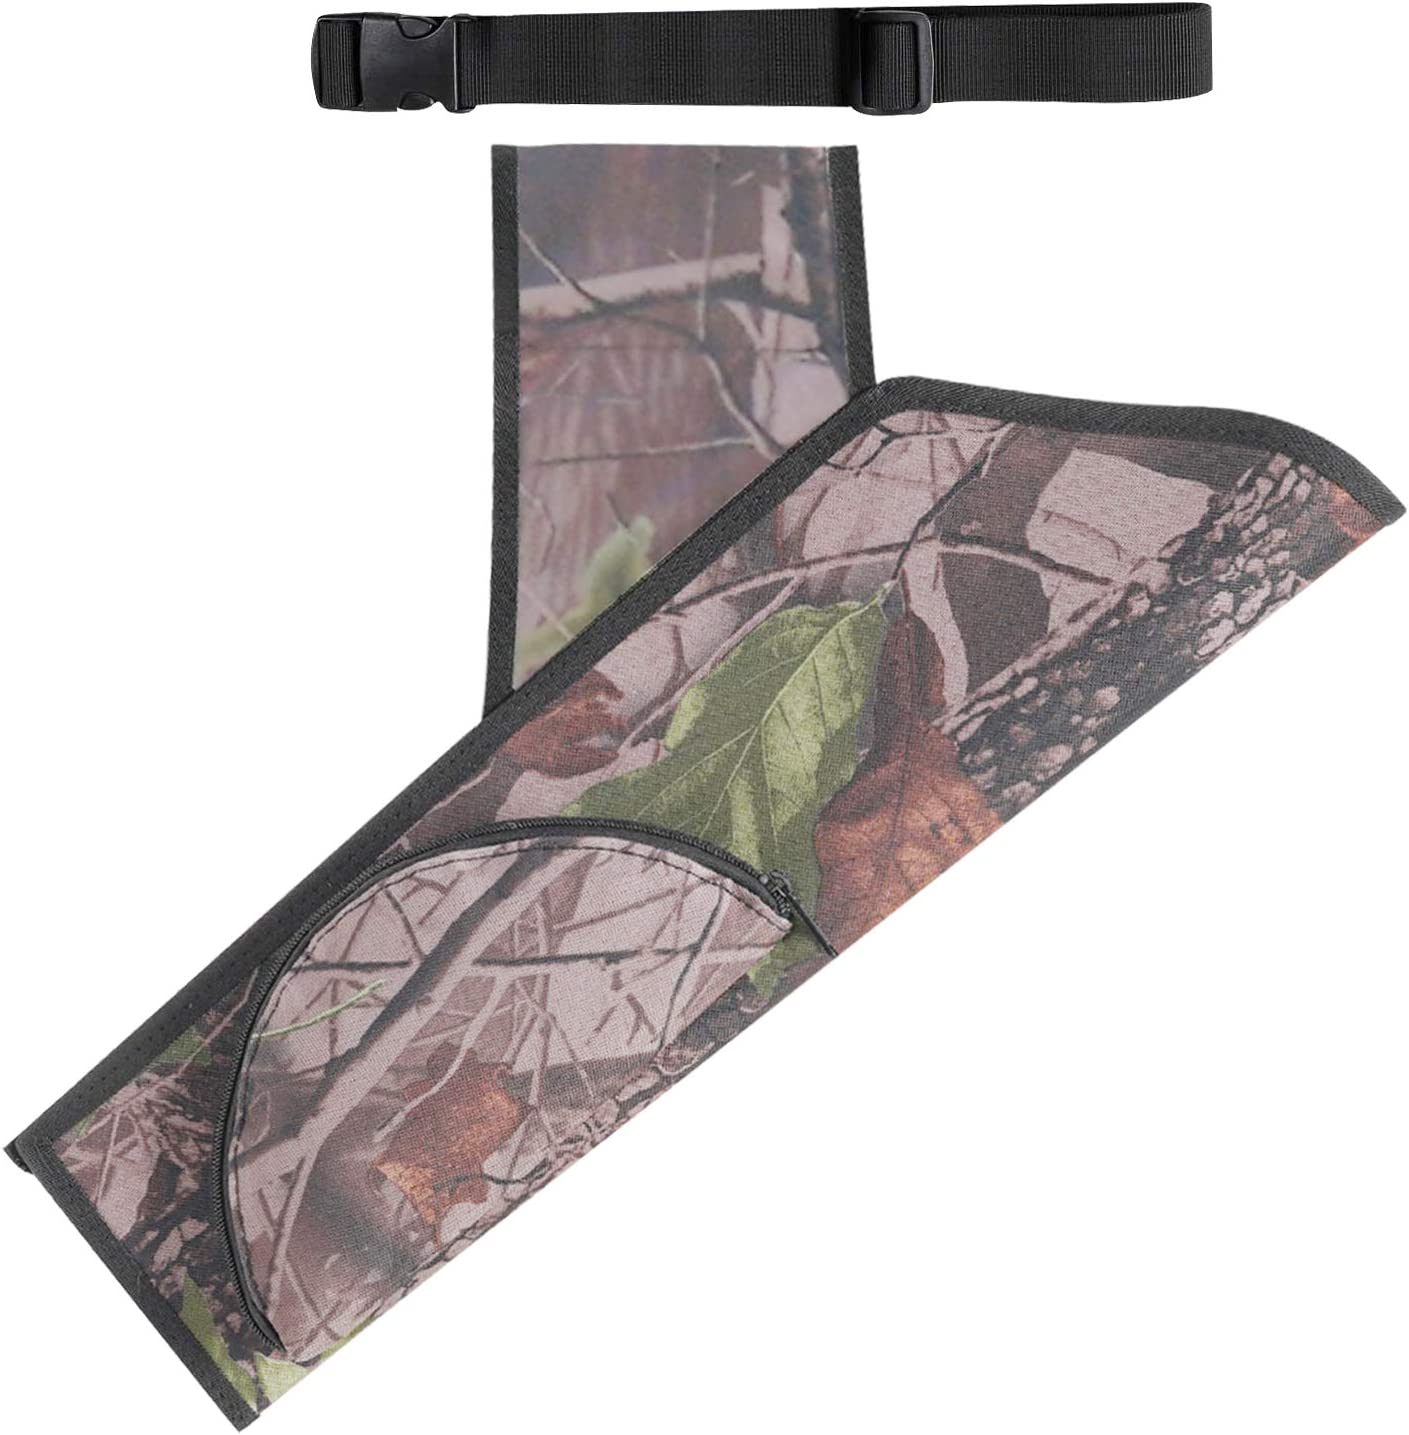 ASDW Archery Quiver Compact Multiple Quiver Back Quiver Archery Arrow Holder with Adjustable Shoulder Strap Hanged Hunting Quiver or Target Quive Practice Arrow Quiver : Sports & Outdoors